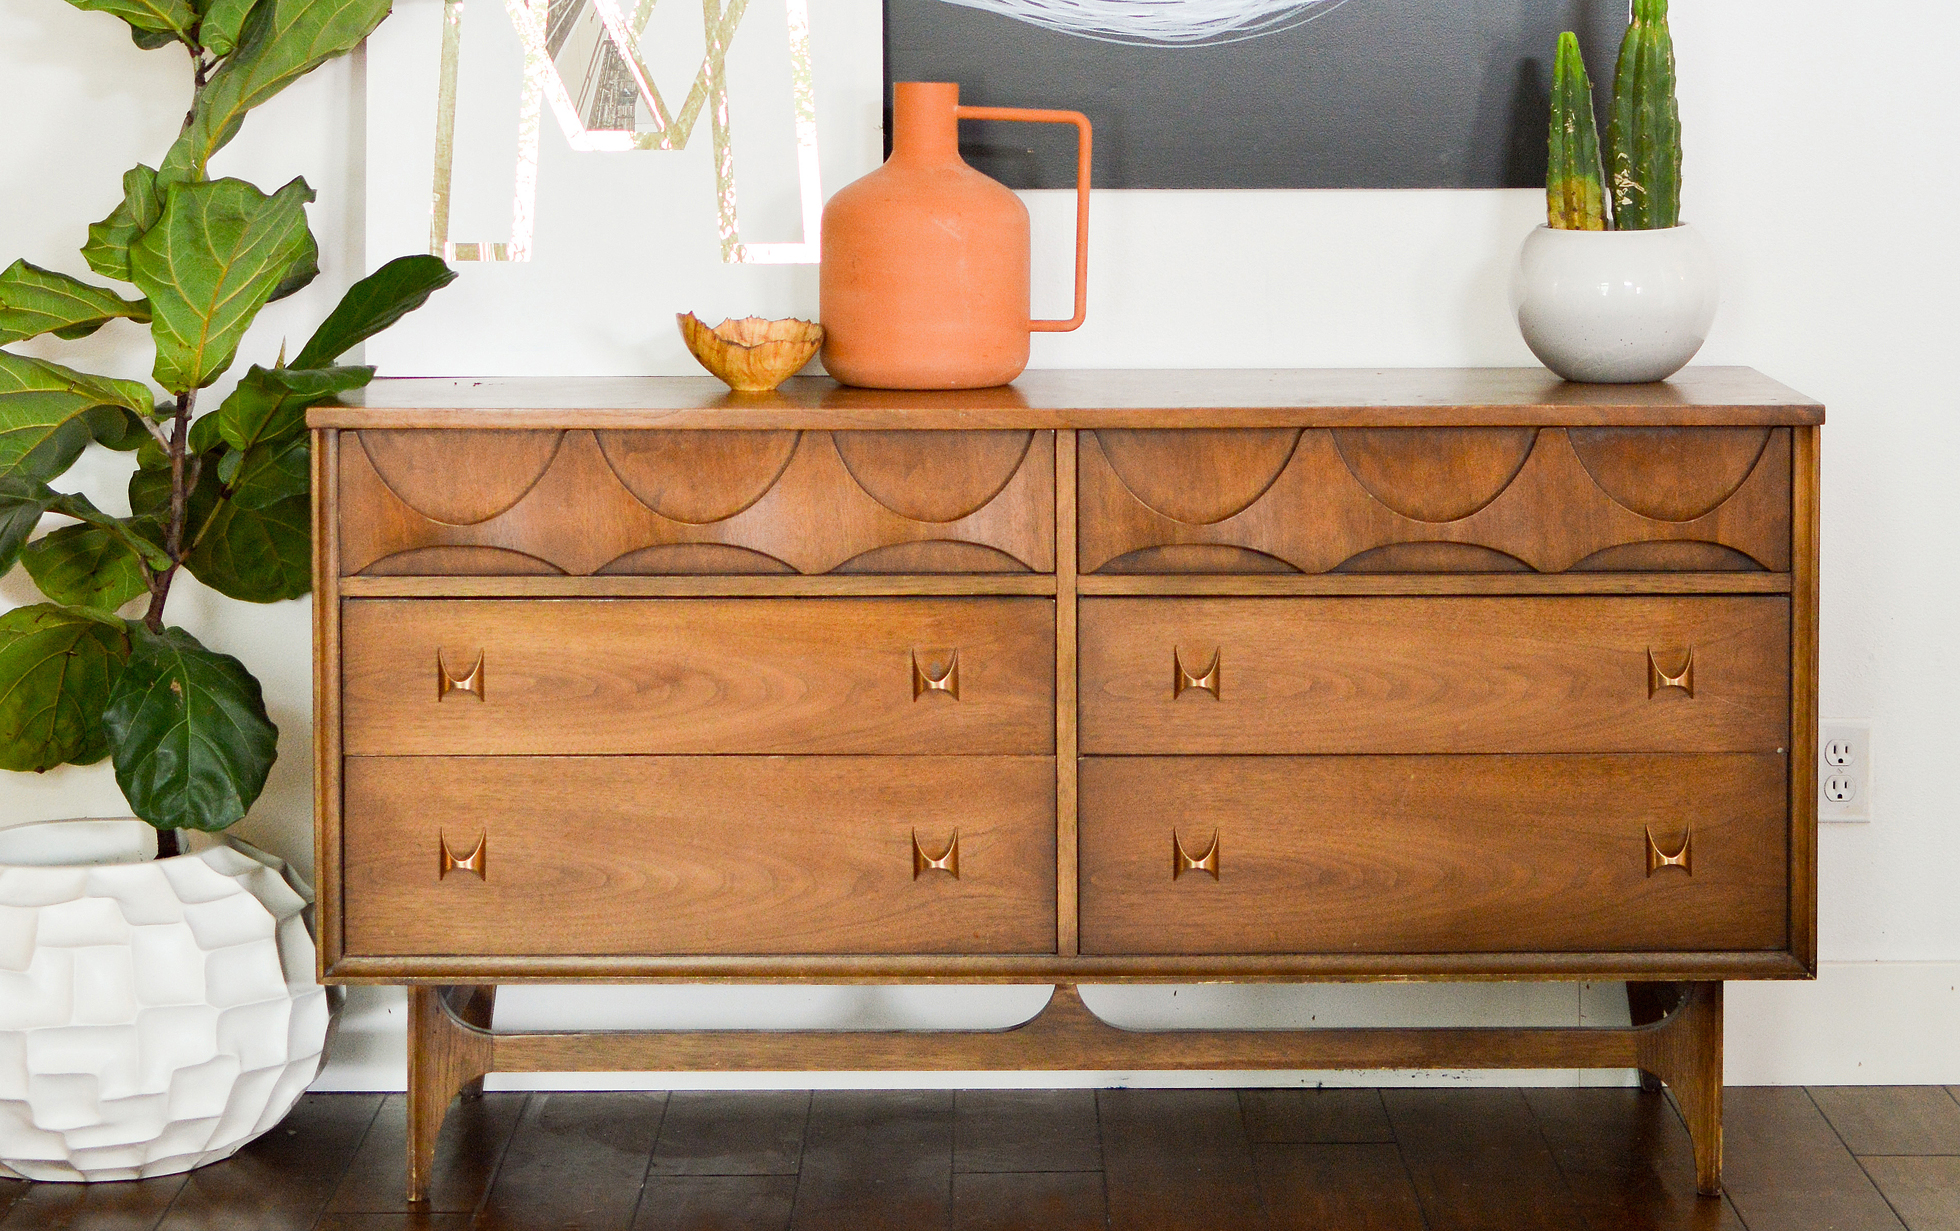 A refinished wood dresser in a bright living room